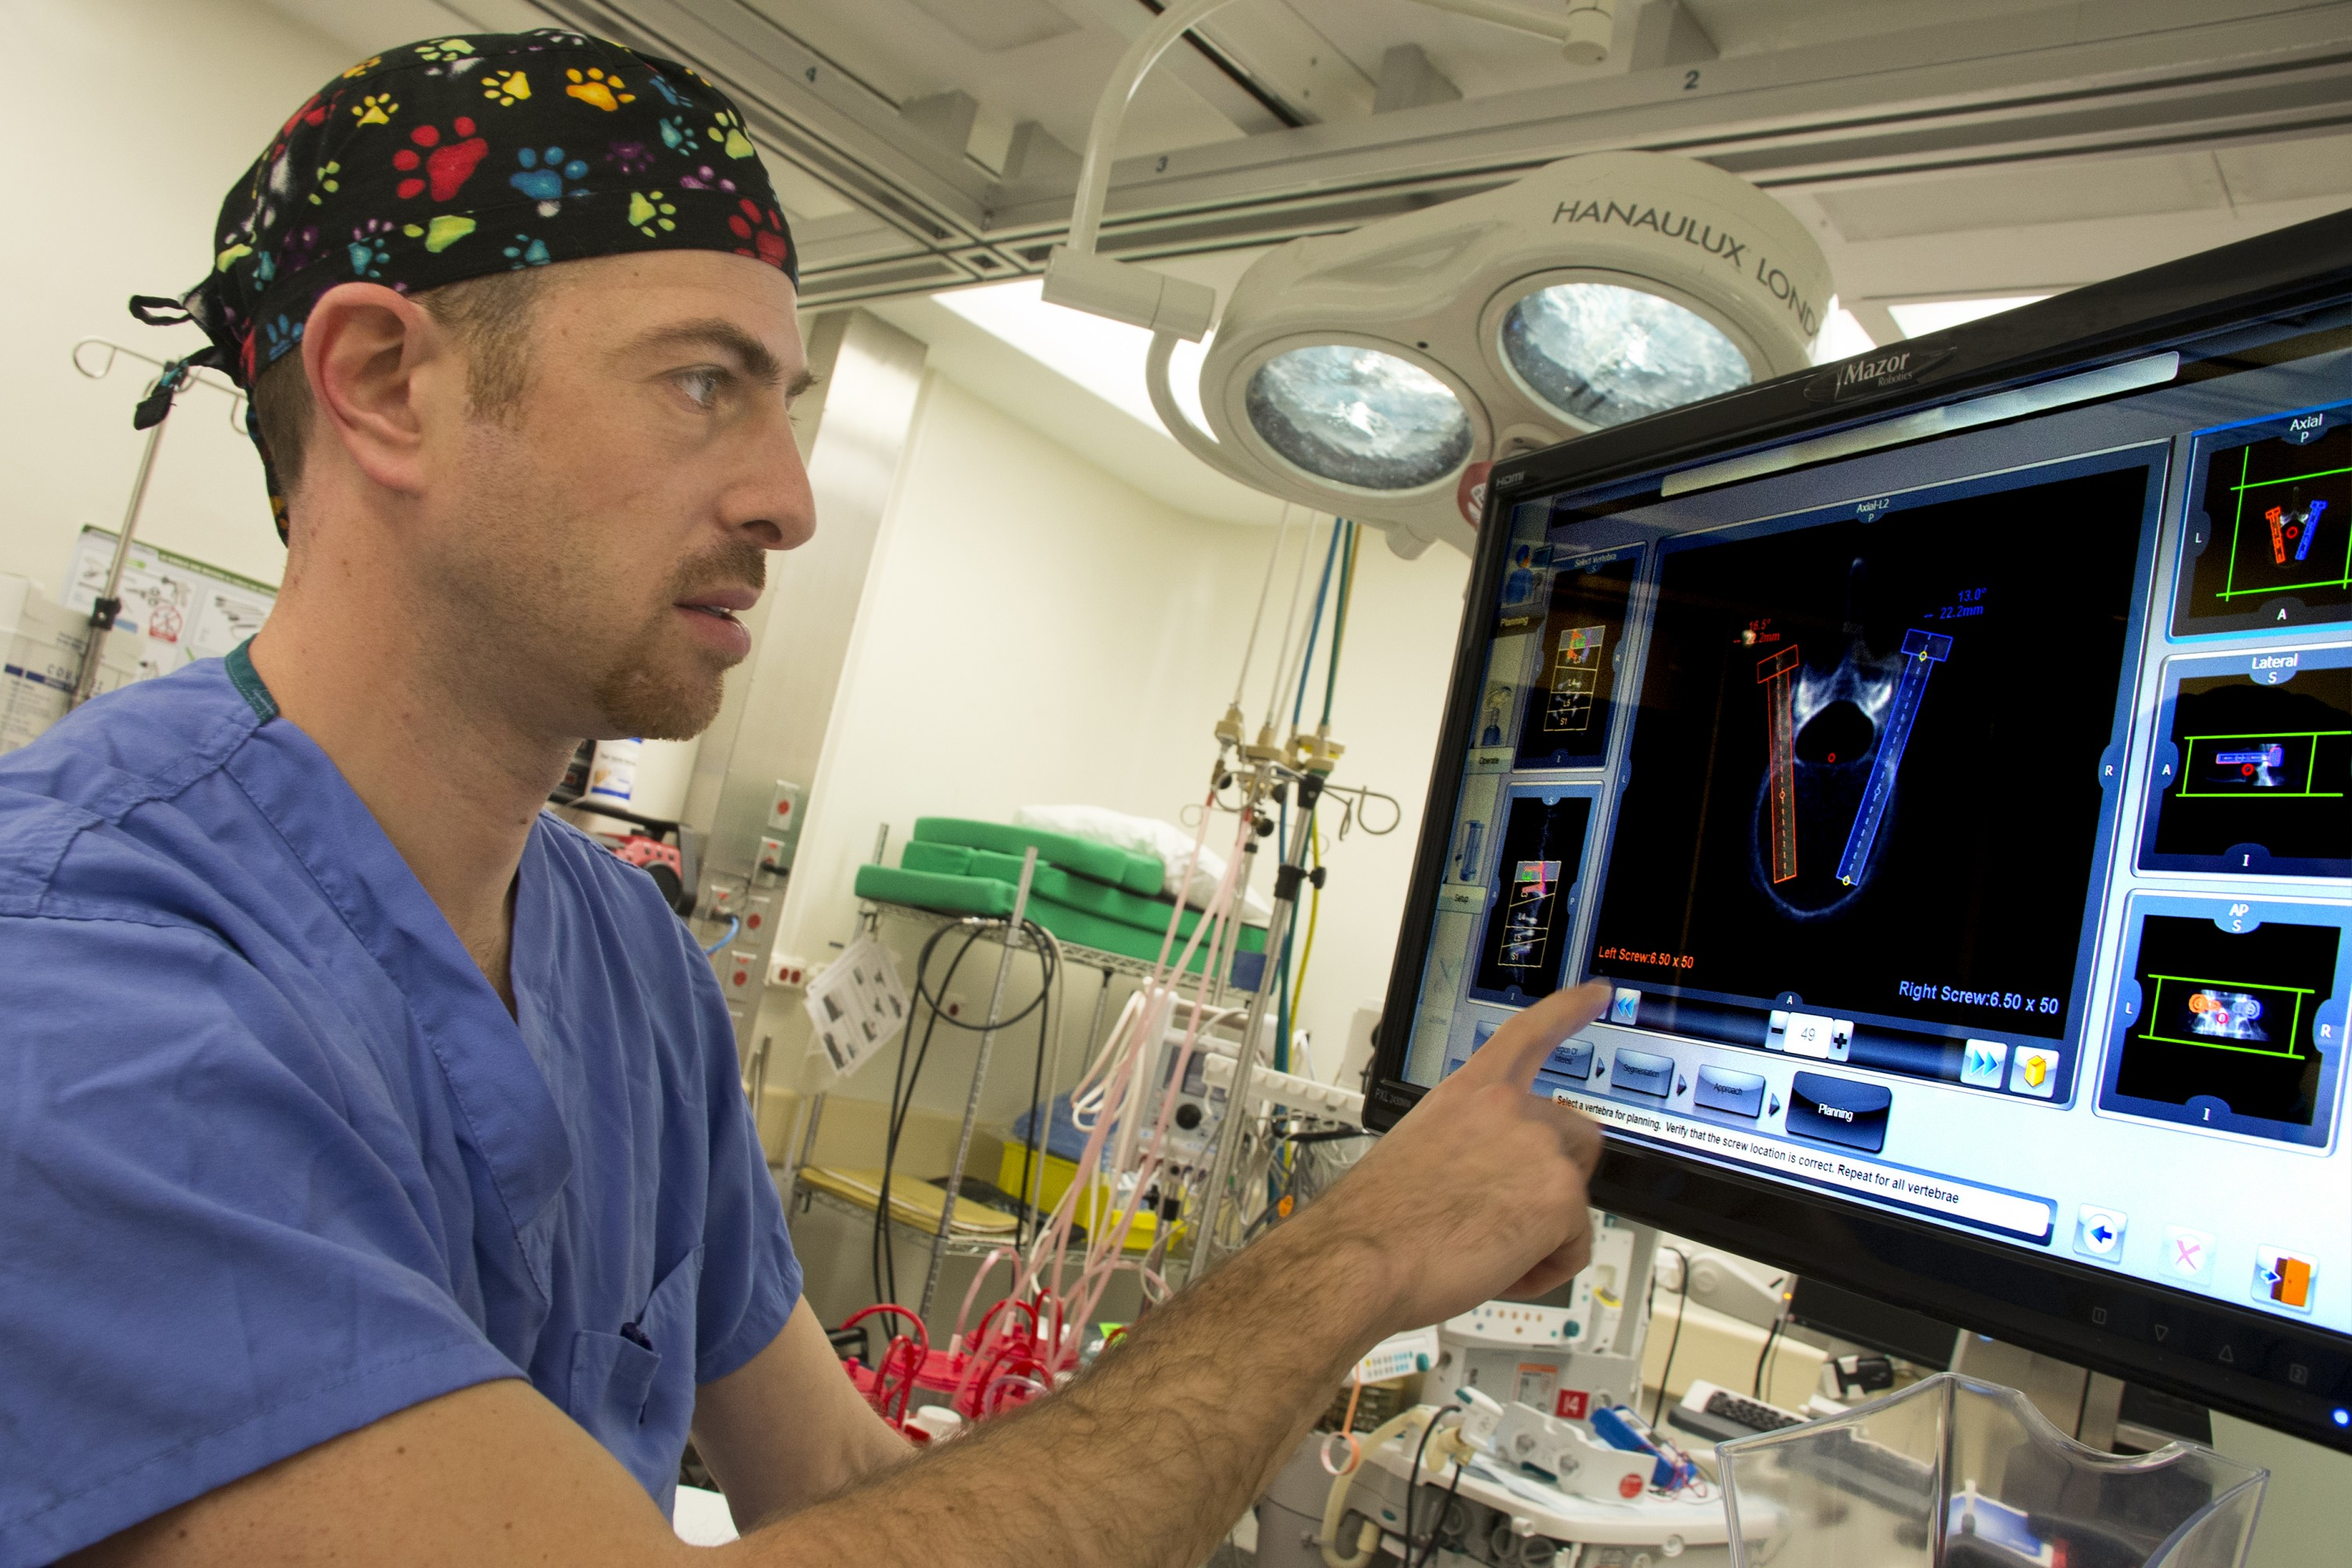 Dr. Isaac Moss of the UConn Musculoskeletal Institute will be New England's and Connecticut's first surgeon to use pioneering robotic guidance technology to assist him during spine surgery at UConn John Dempsey Hospital. (Janine Gelineau/UConn Health Photo)